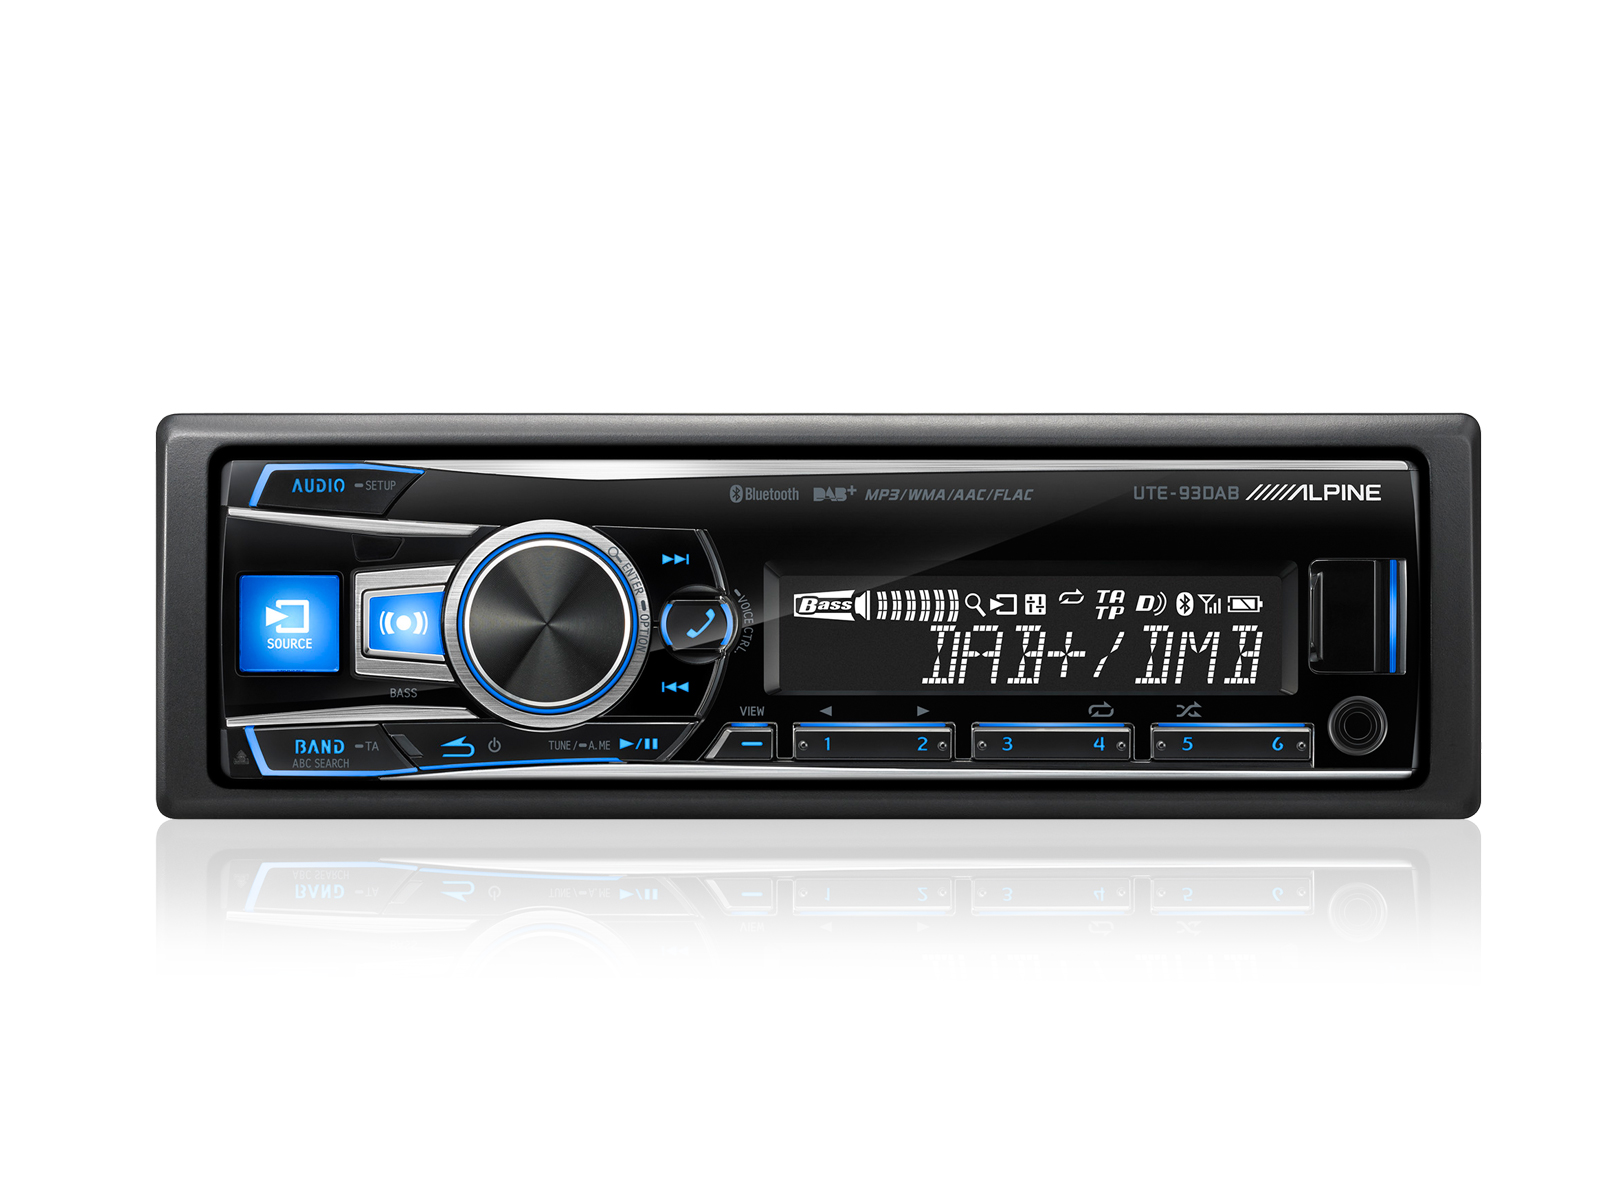 alpine dab autoradio ute 93dab bluetooth usb. Black Bedroom Furniture Sets. Home Design Ideas